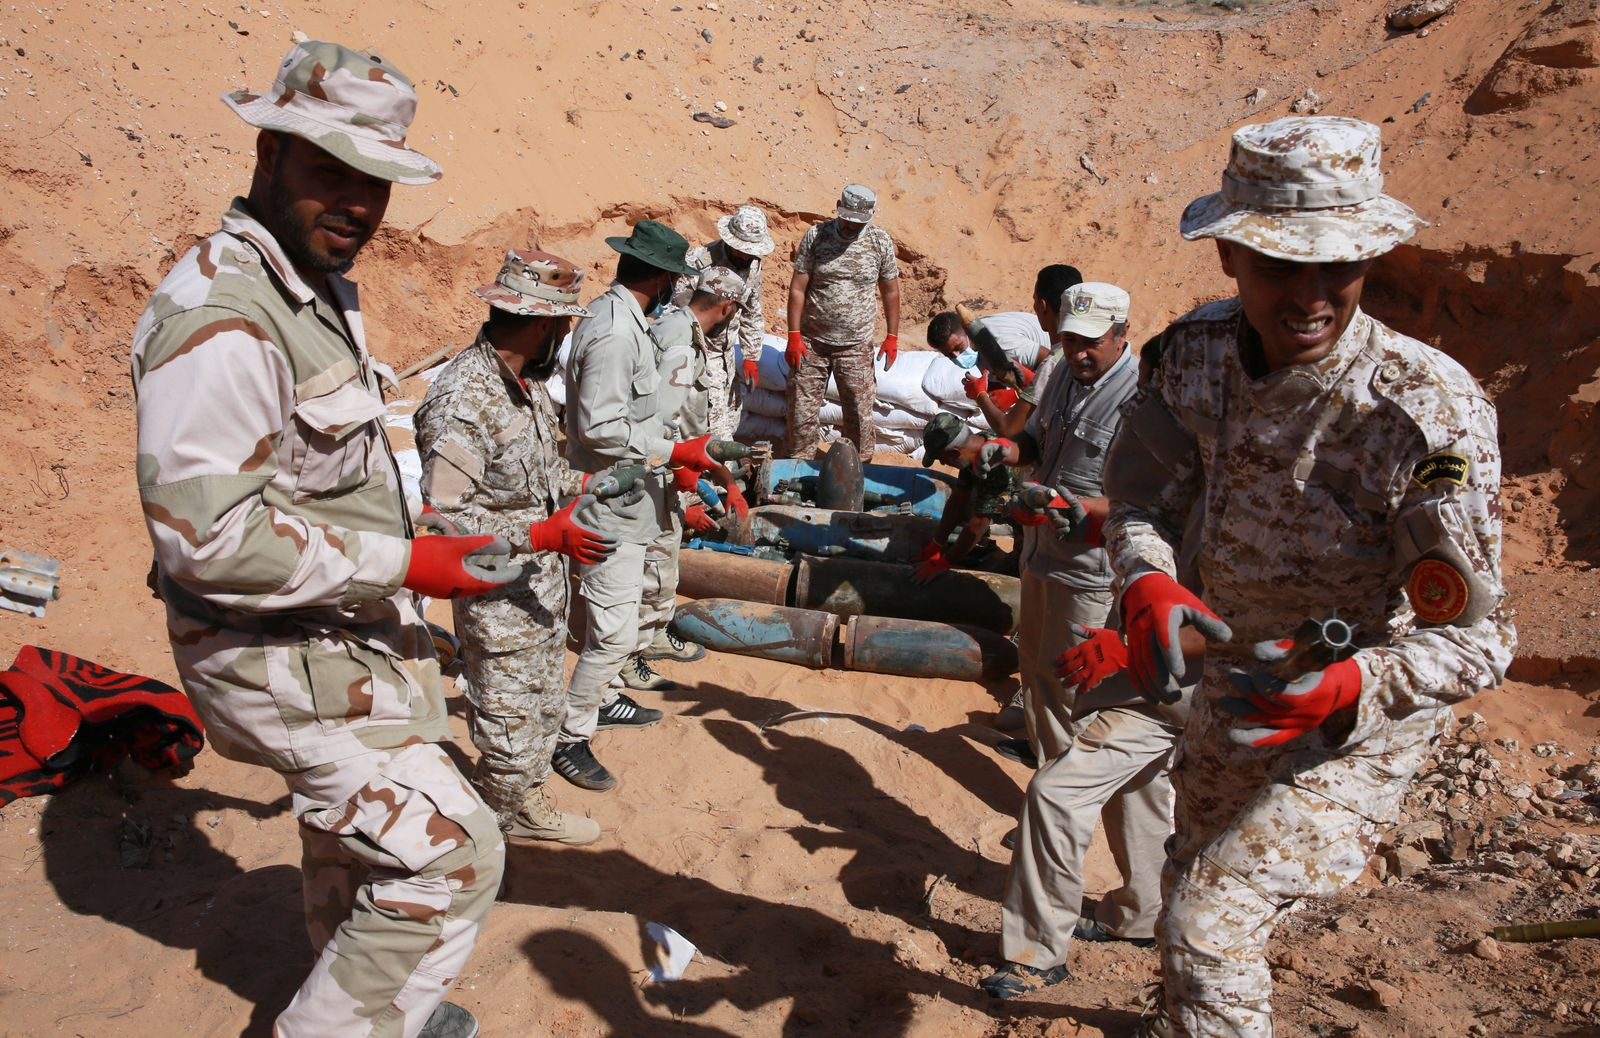 (201013) -- TRIPOLI, Oct. 13, 2020 -- Fighters of the UN-backed Libyan government move explosive remnants in an old mil